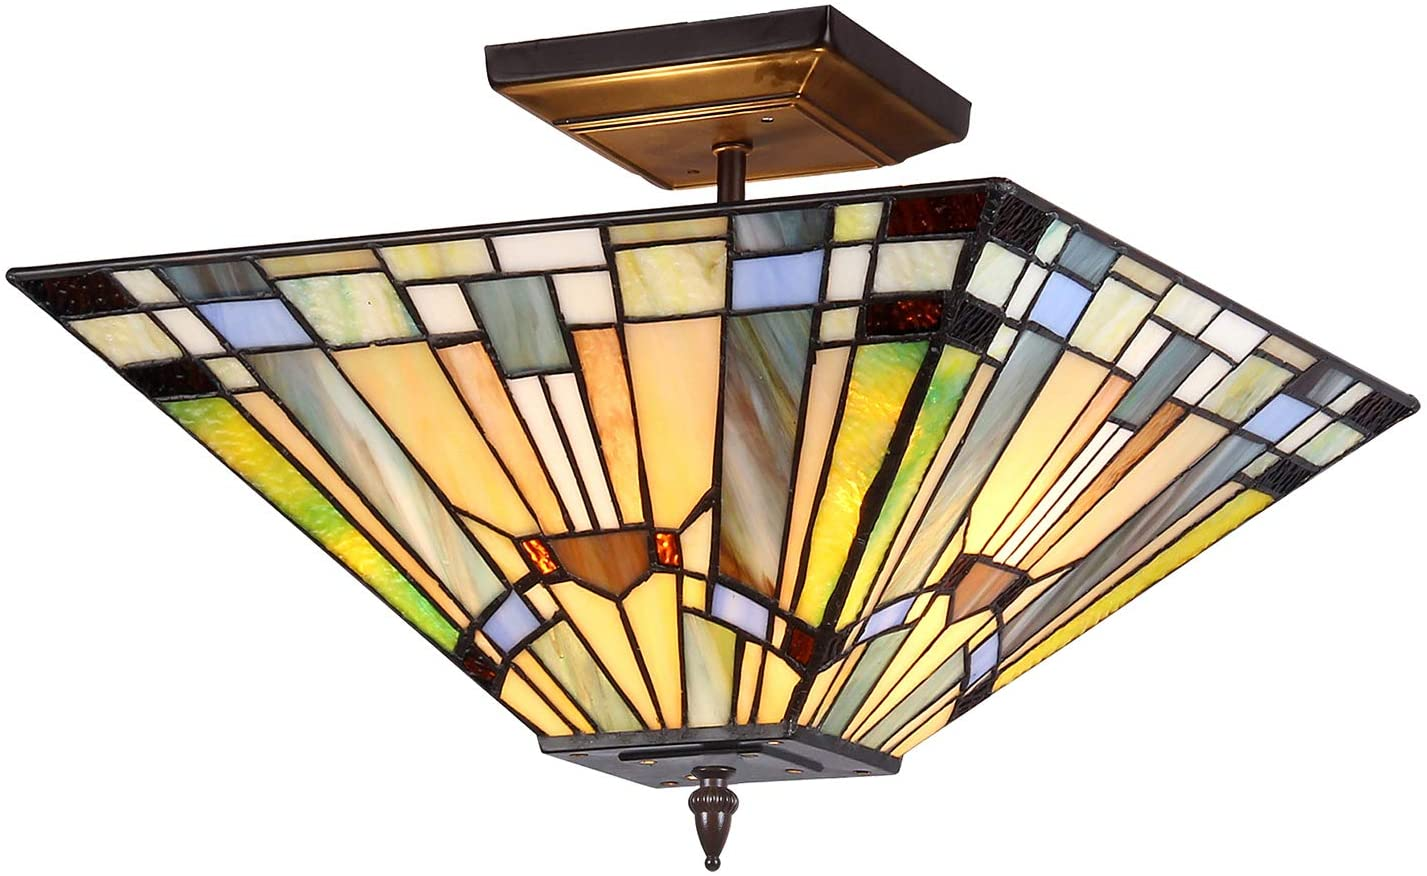 Capulina Tiffany Style Ceiling Light Fixtures, 2-Light Semi Flush Tiffany Ceiling Lights, 14 Inch Wide Blue Stained Glass Ceiling Light,Mission Style Tiffany Style Ceiling Flush Mount